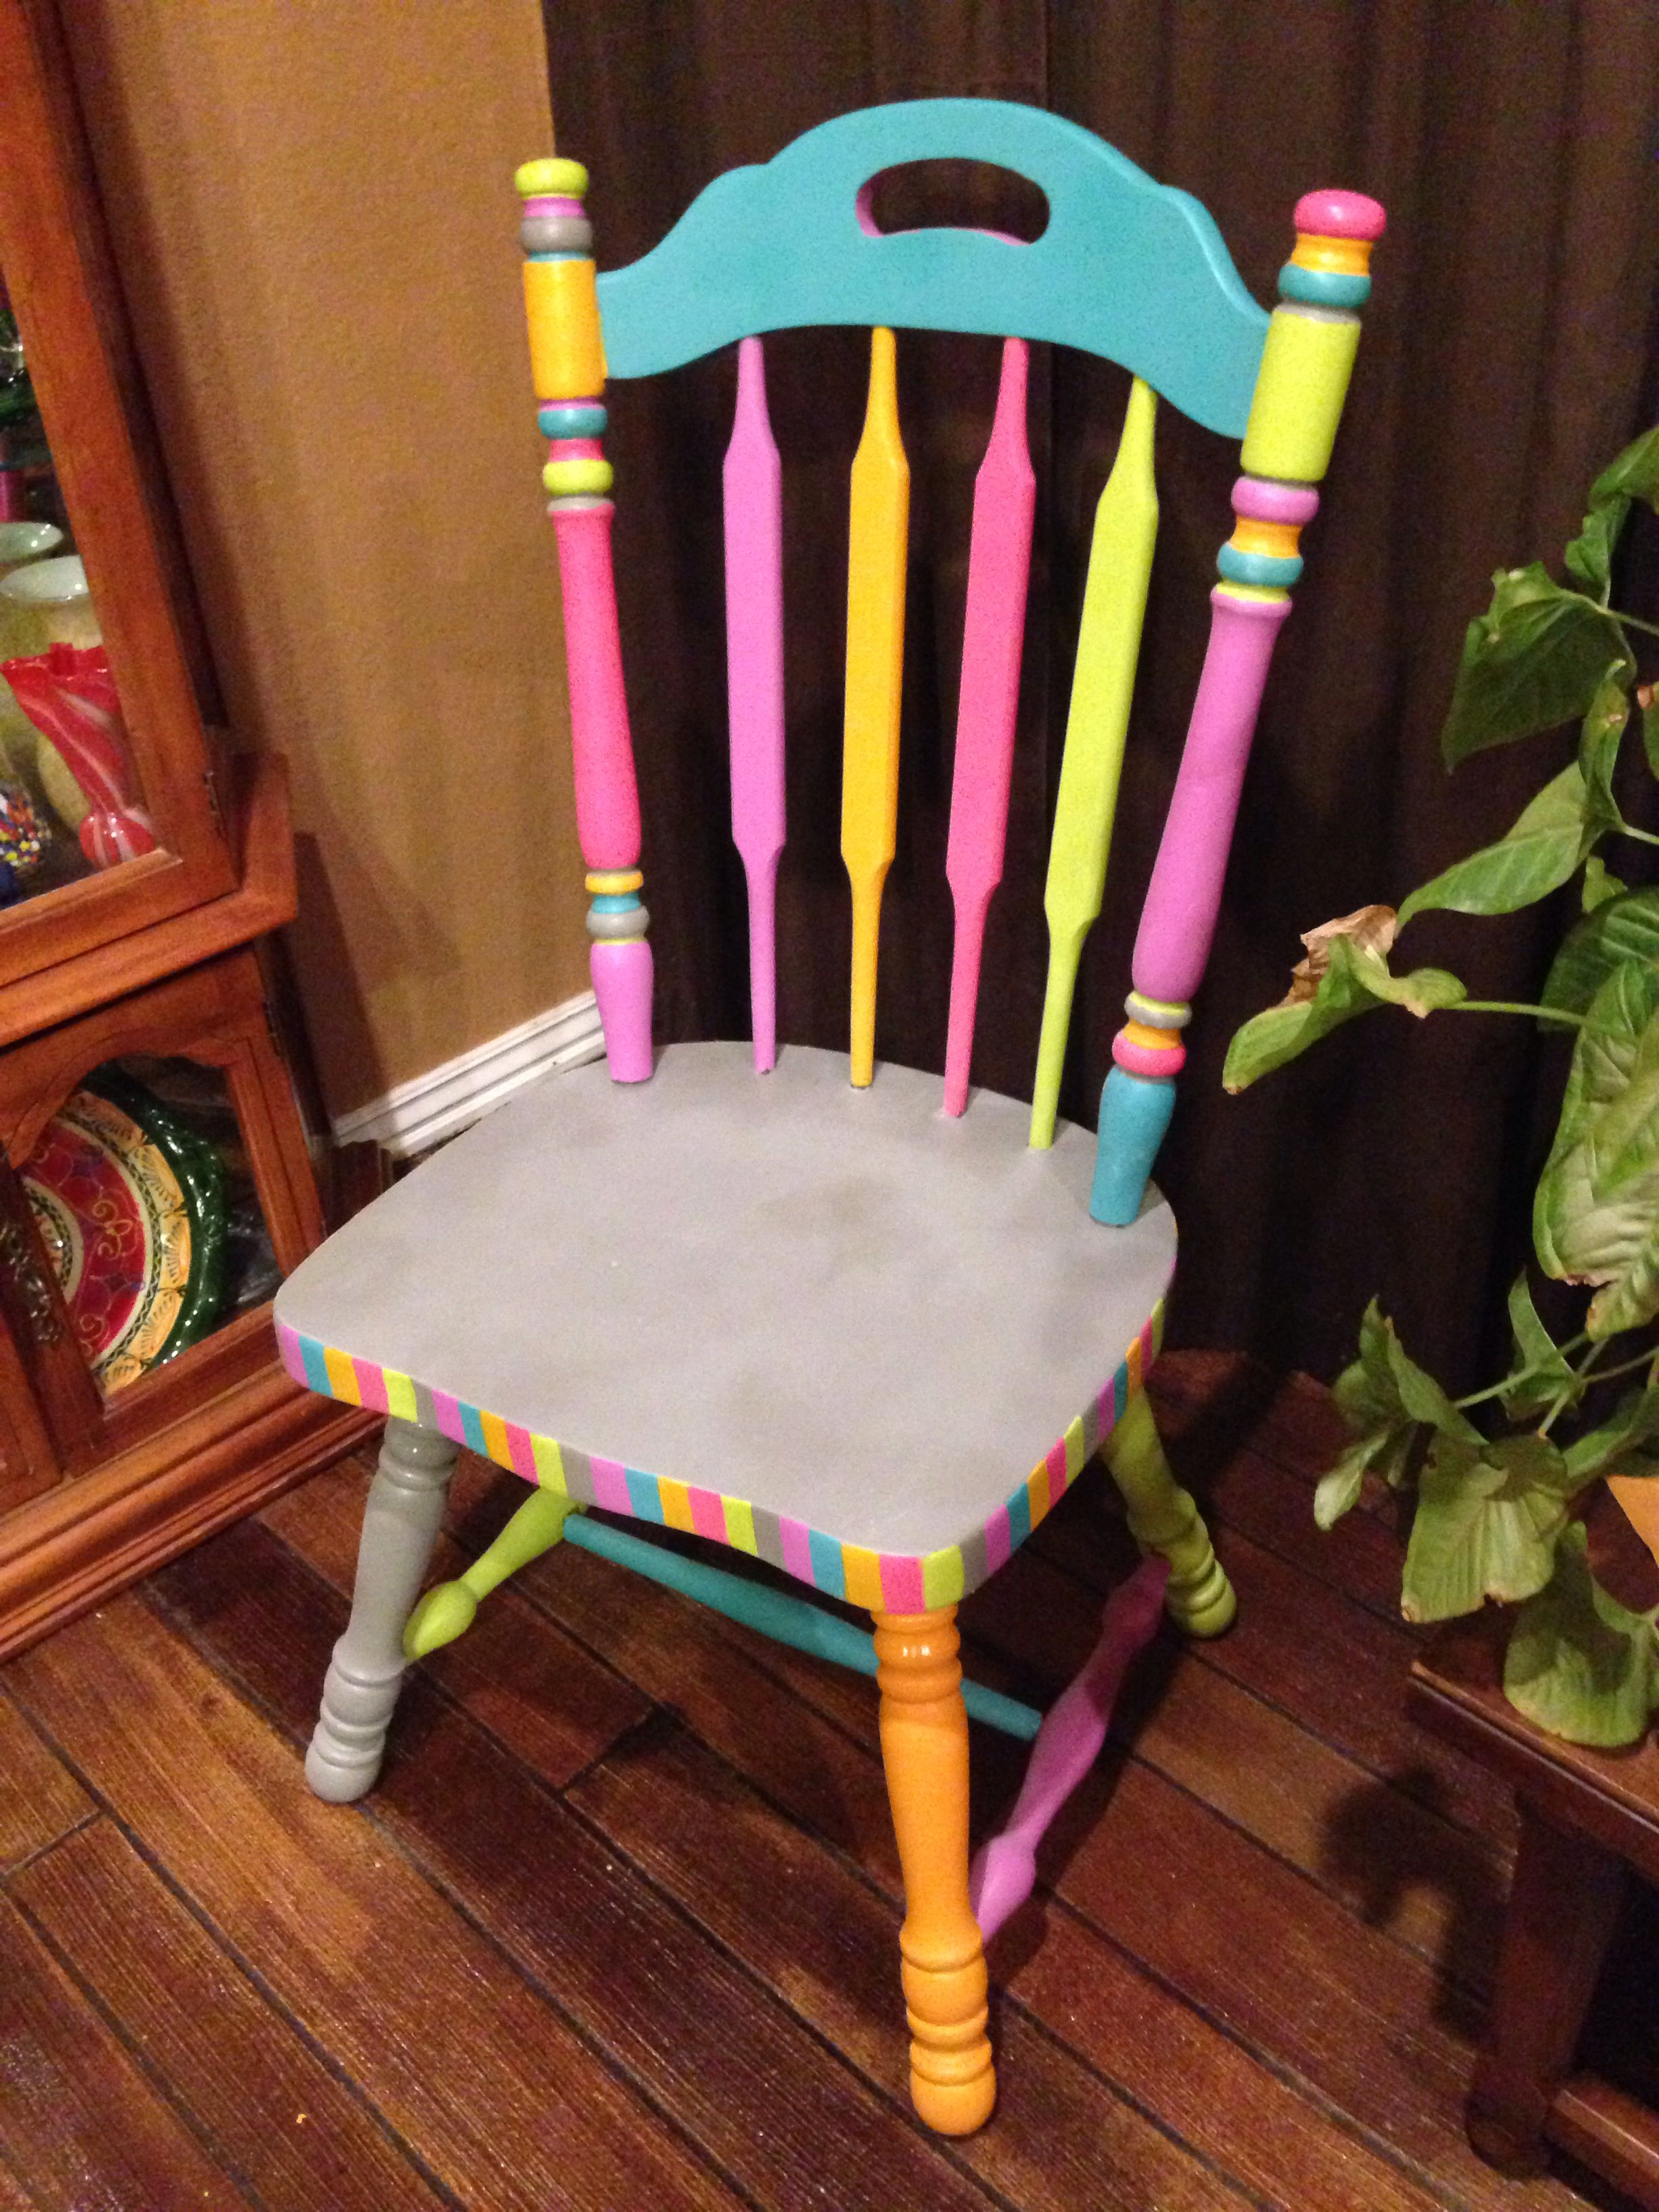 Free chair bright colored paint perfect teacher chair